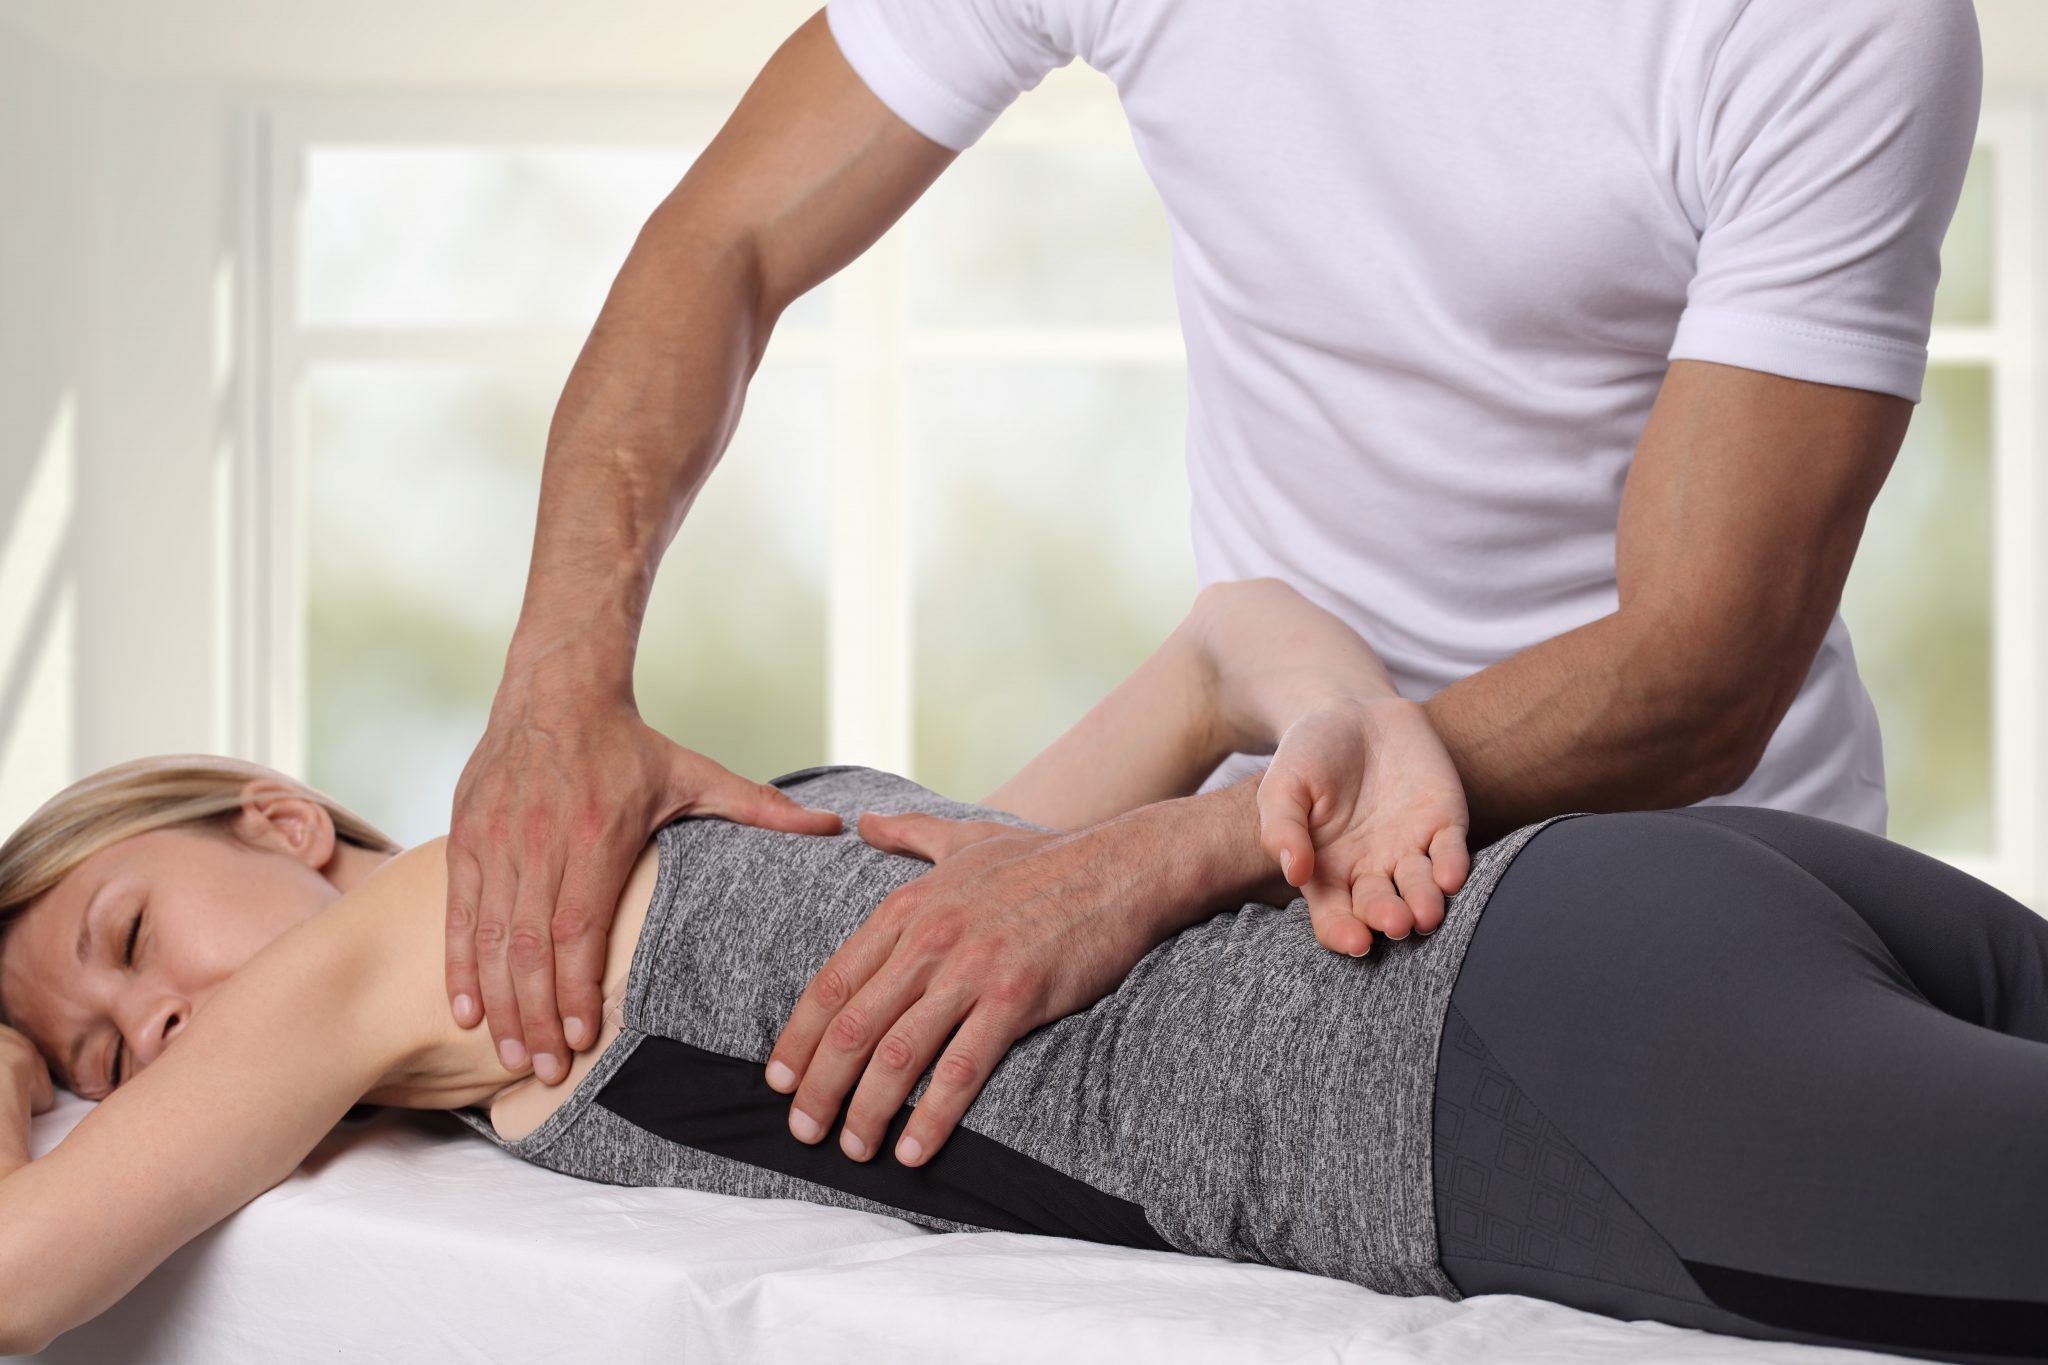 Physical Therapy & Chiropractic Treatments